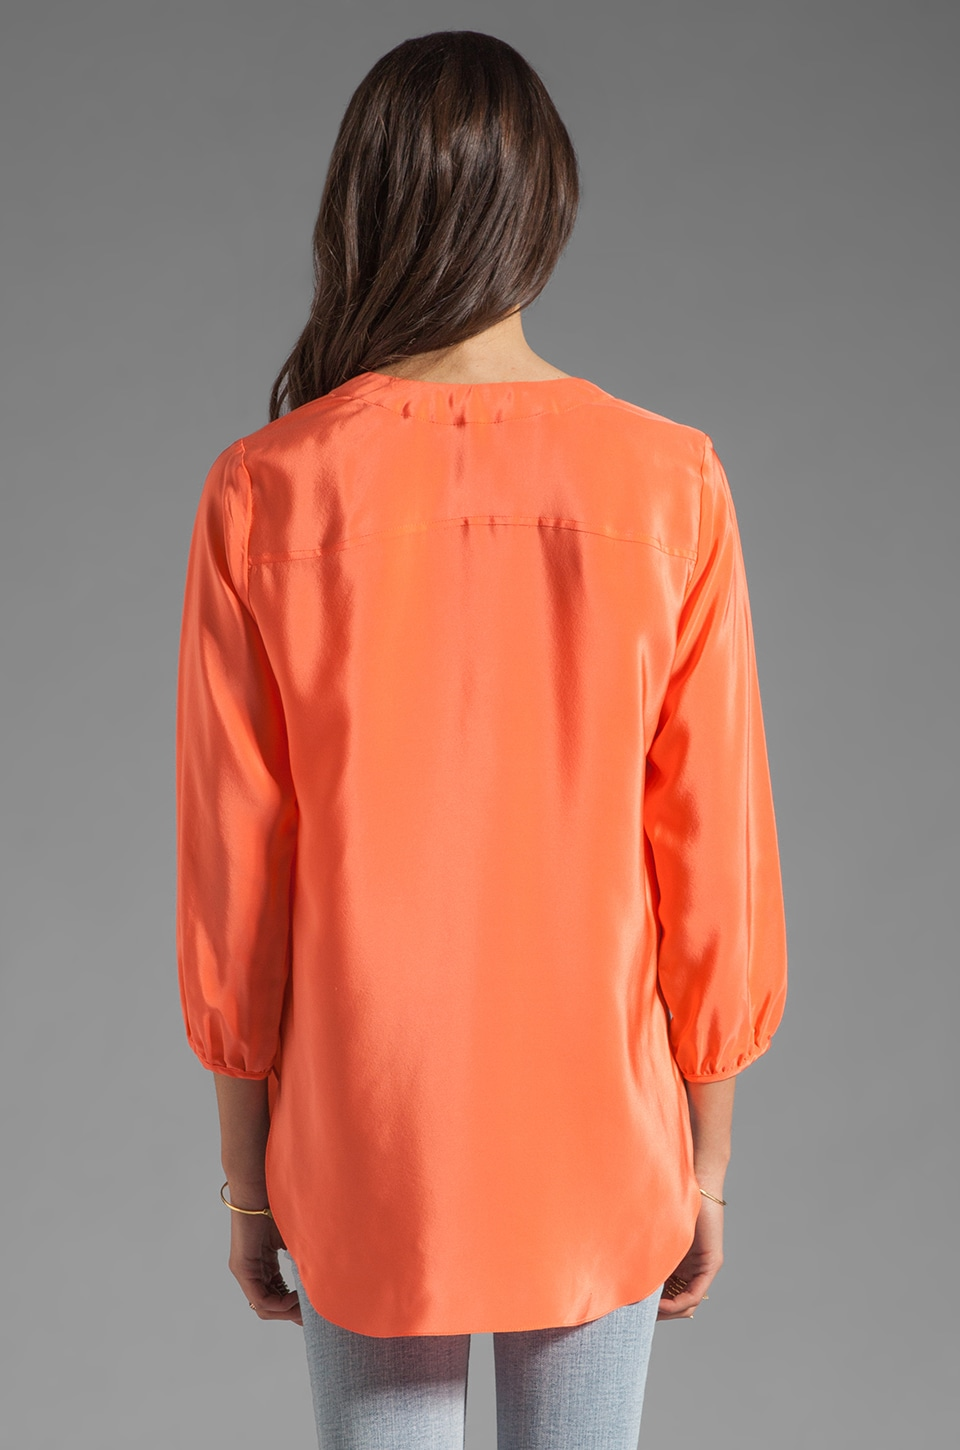 Amanda Uprichard Highliner Blouse in Coral